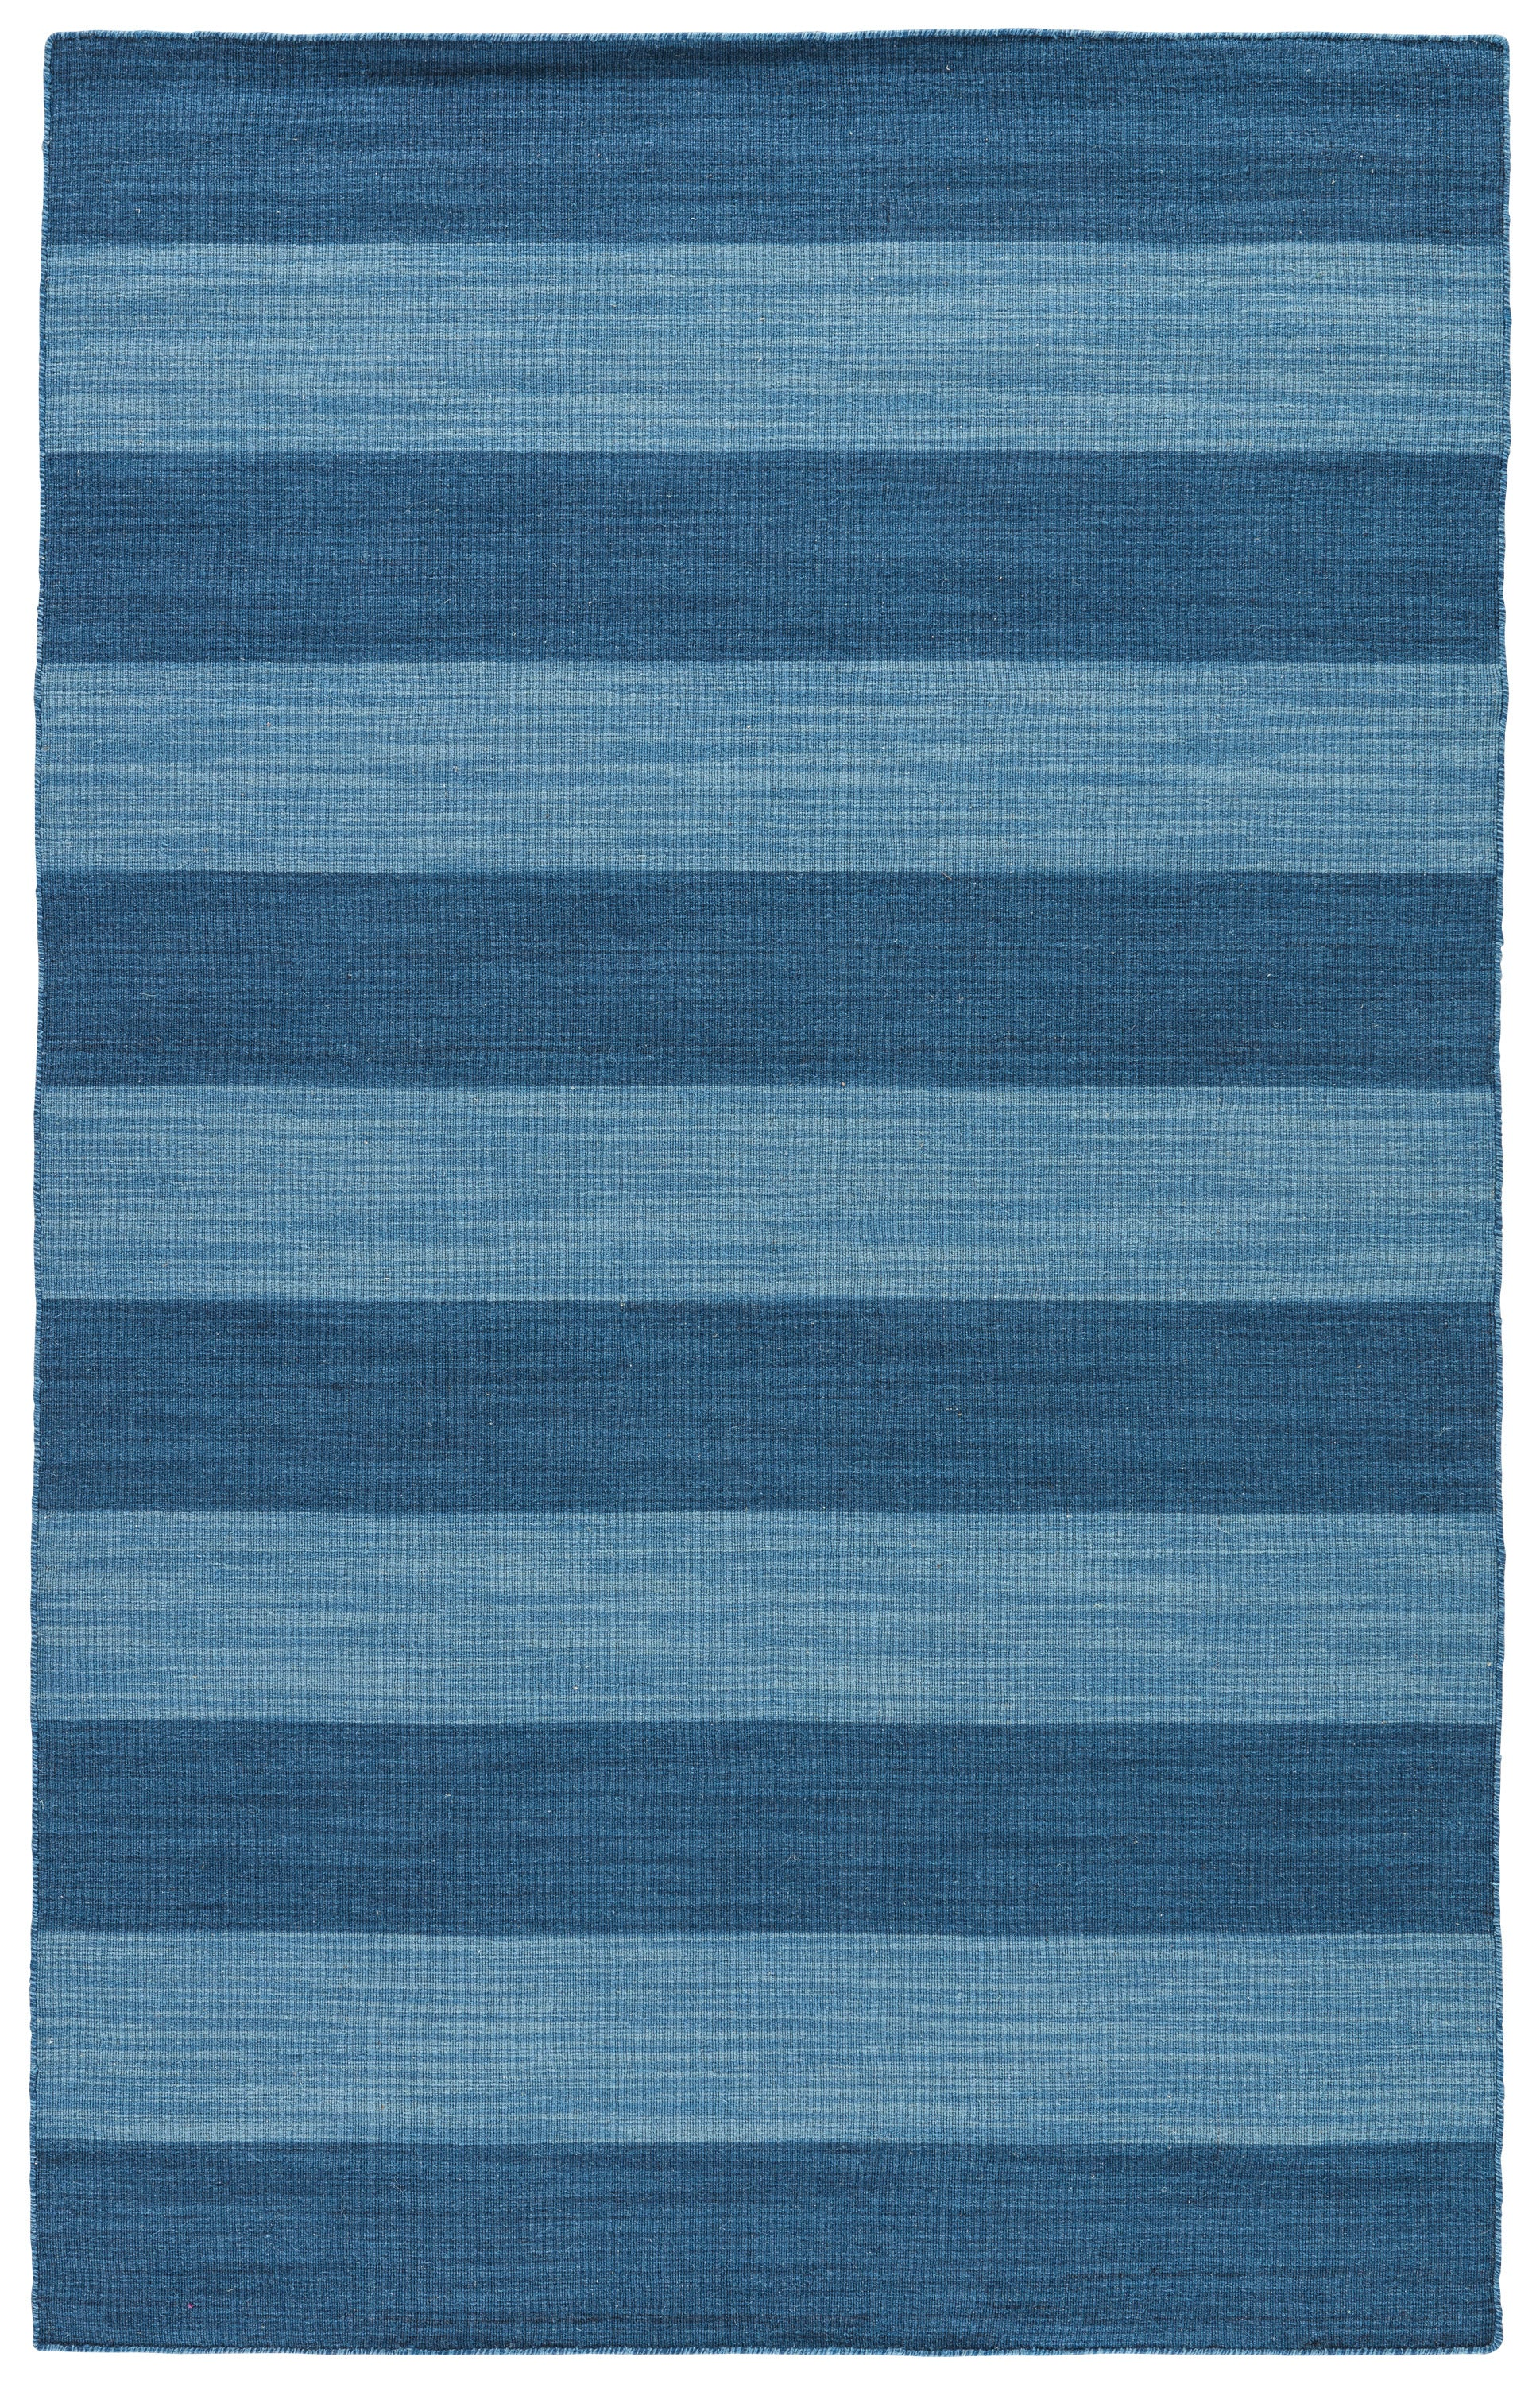 Rectangle Blue Stripe Dhurrie Wool Transitional recommended for Kitchen, Bedroom, Bathroom, Dining Room, Office, Hallway, Living Room